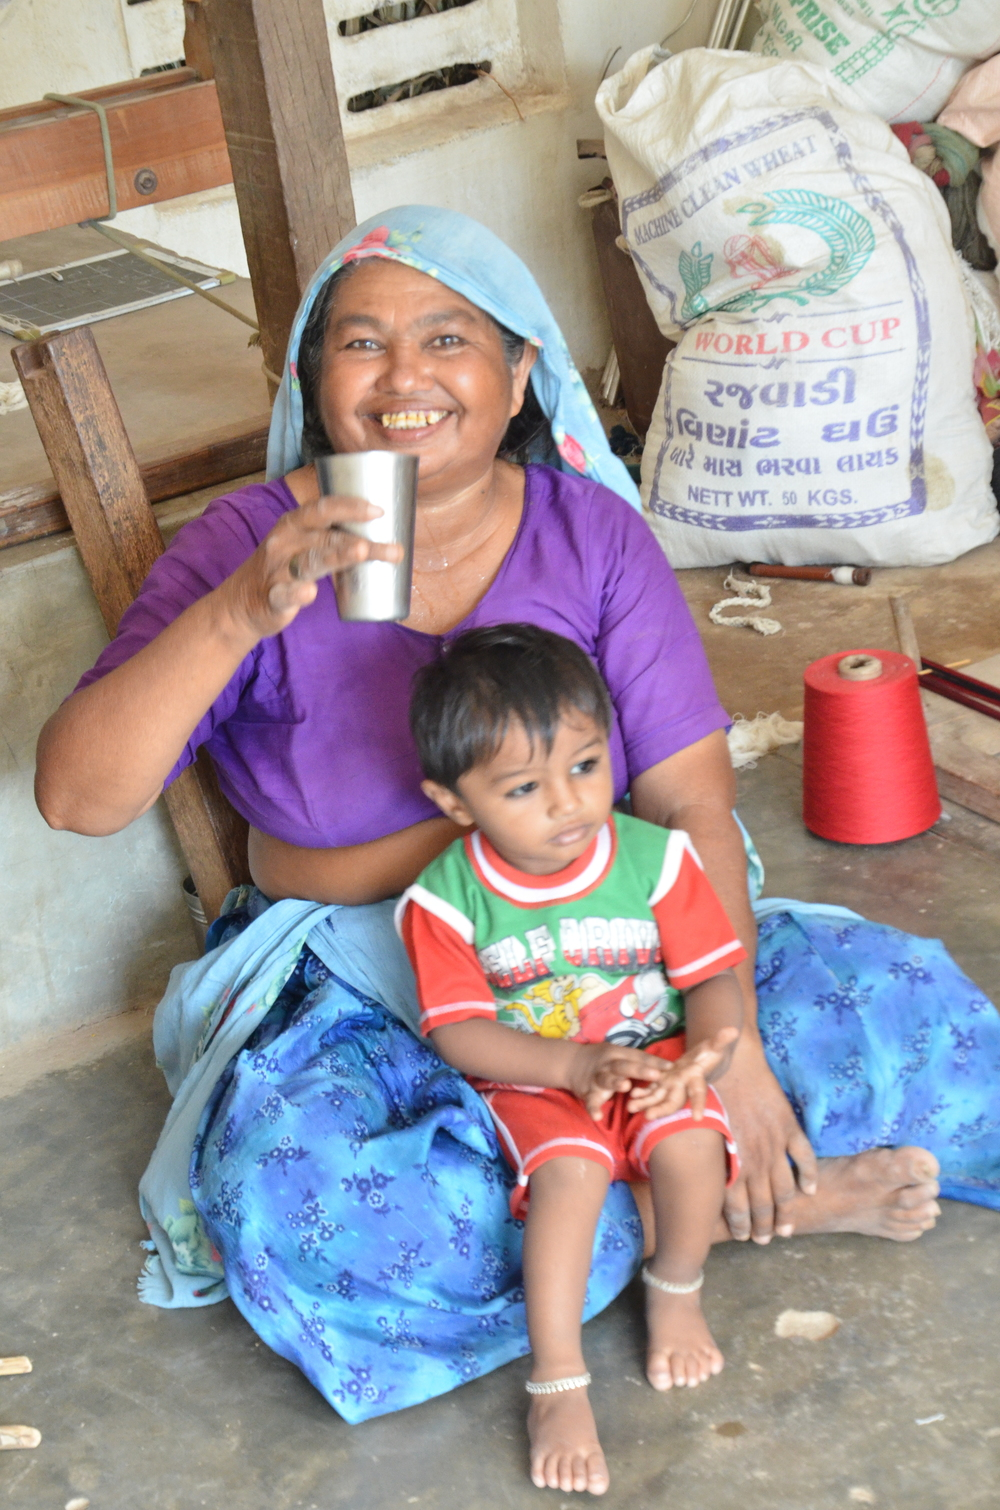 MaaJi, the mother and head of the KOR family household, pictured here with her grandson, Dux. Like her daughters-in-law, she plays a major role in enabling the family to uphold its weaving tradition.